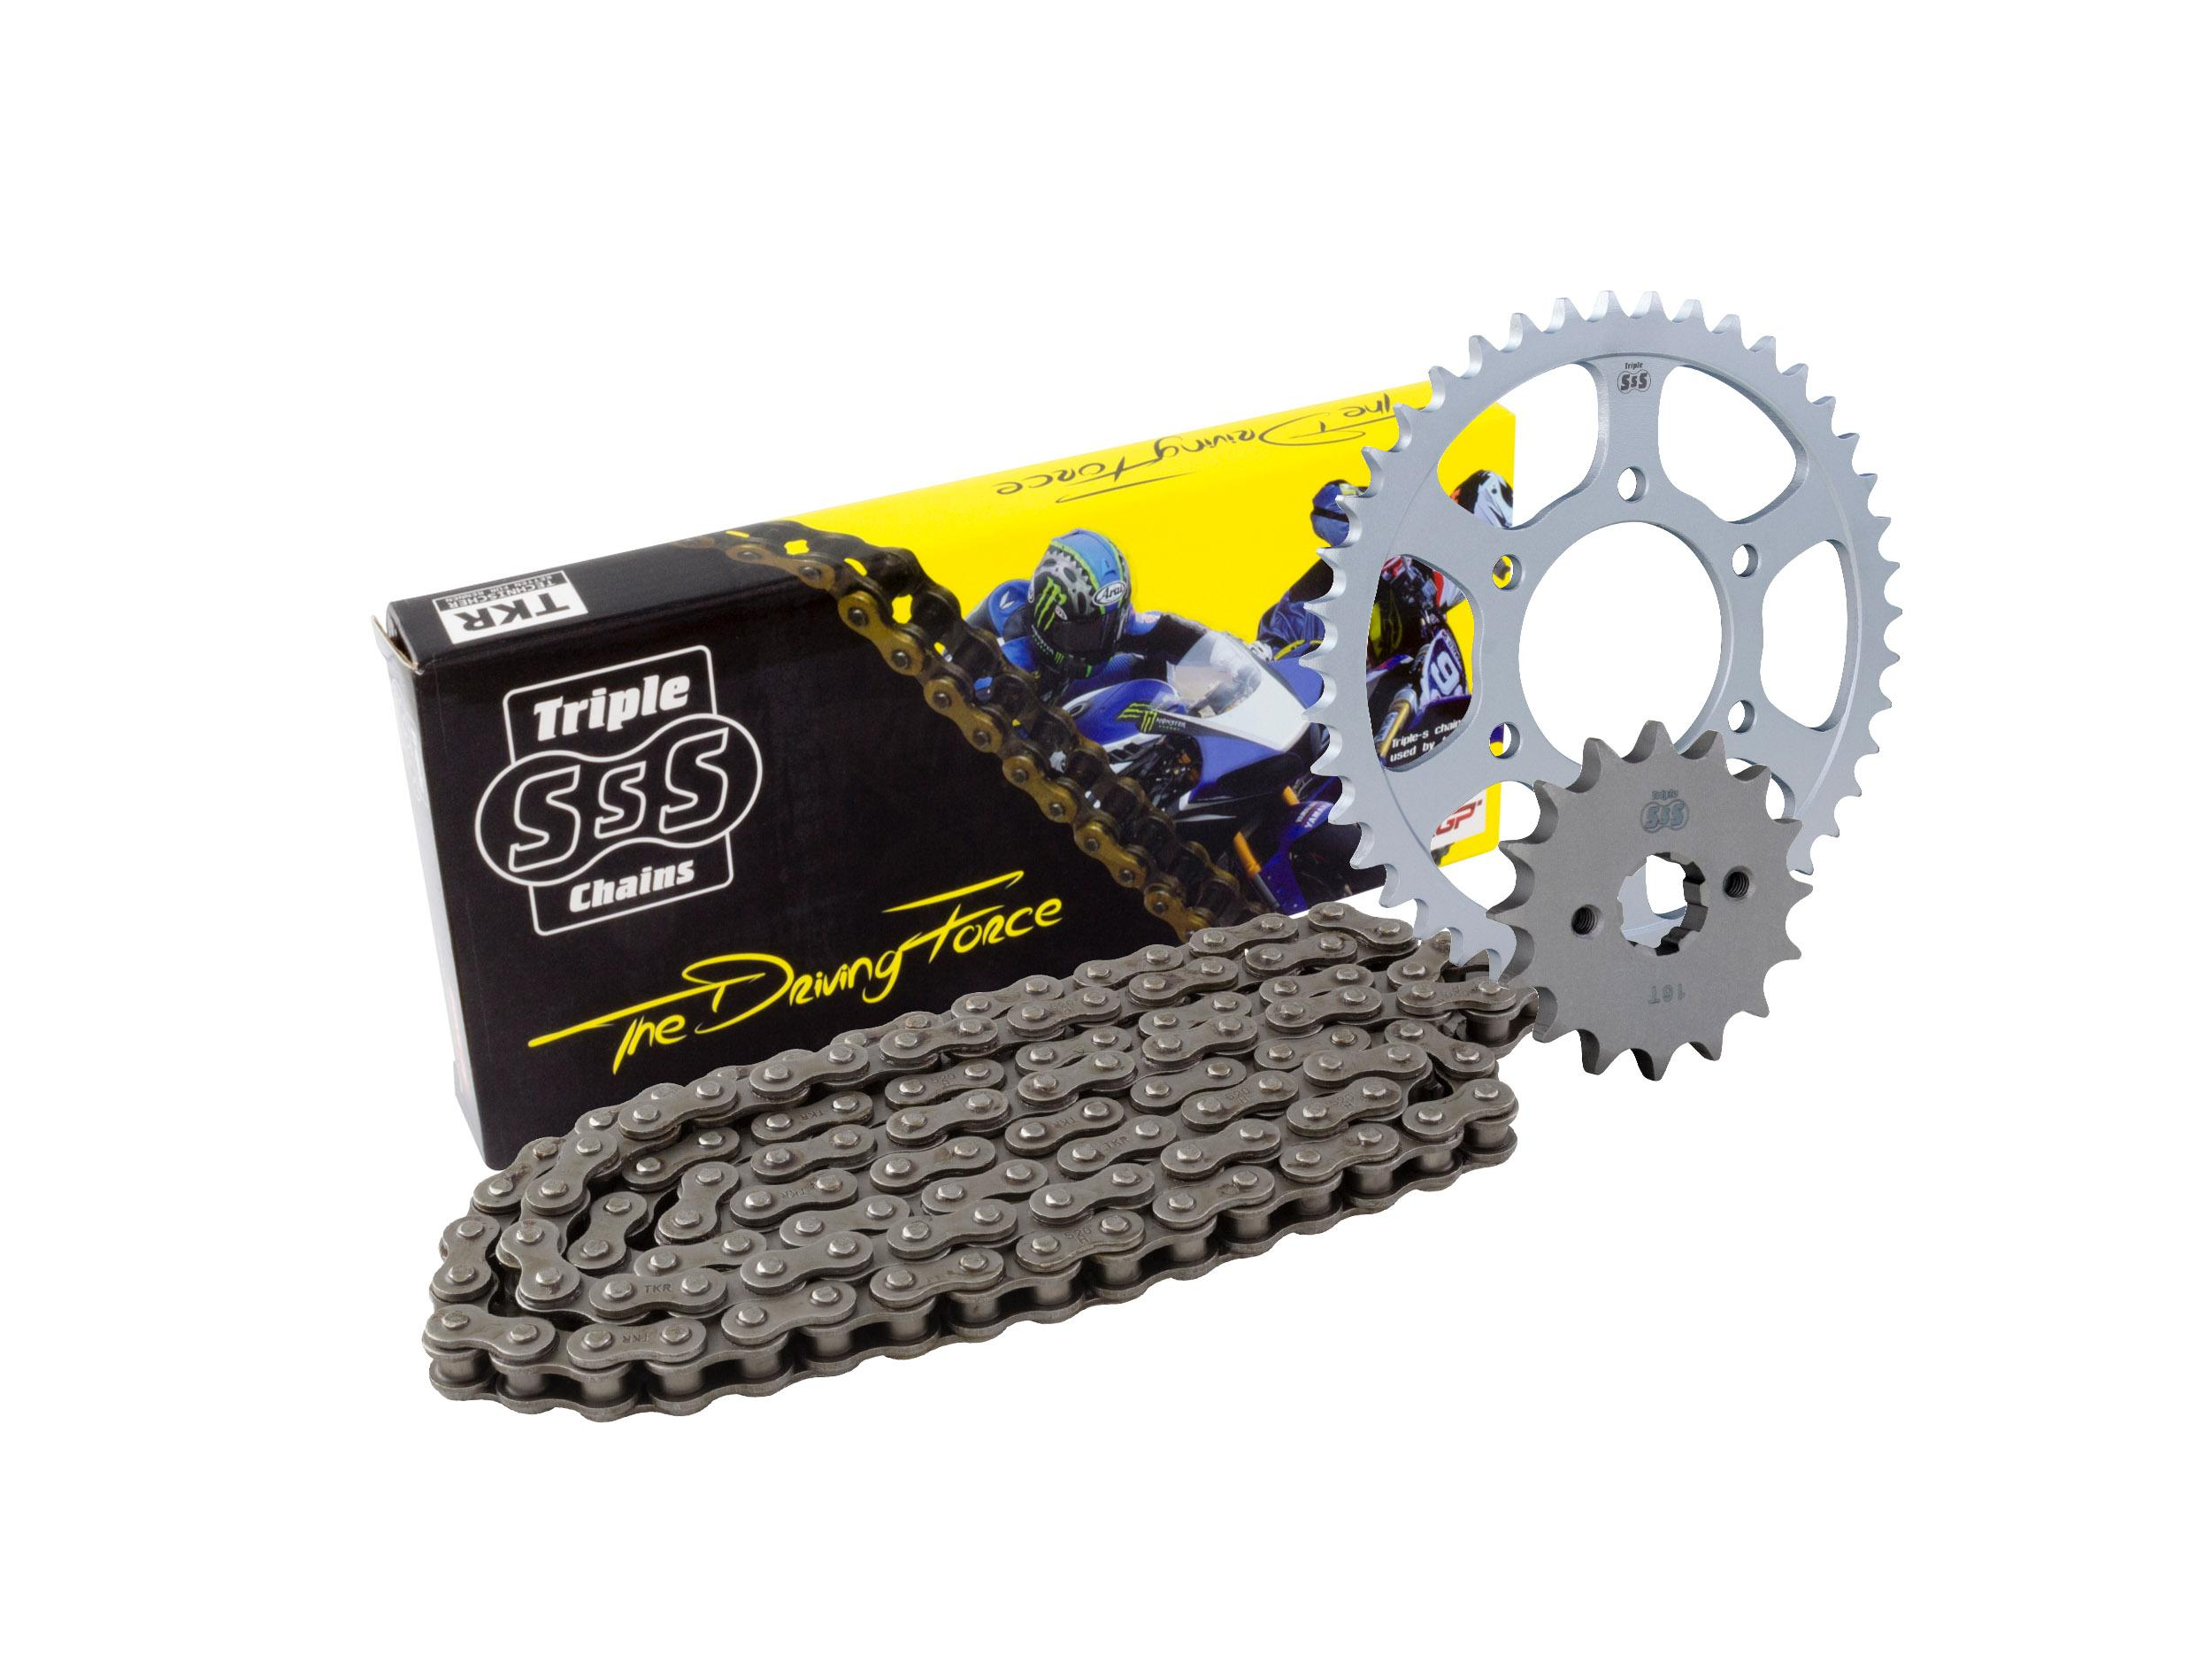 Hyosung XRX125 Funduro / SM 07-08 Chain & Sprocket Kit: 14T Front, 48T Rear, HD Chain 428H 132Link